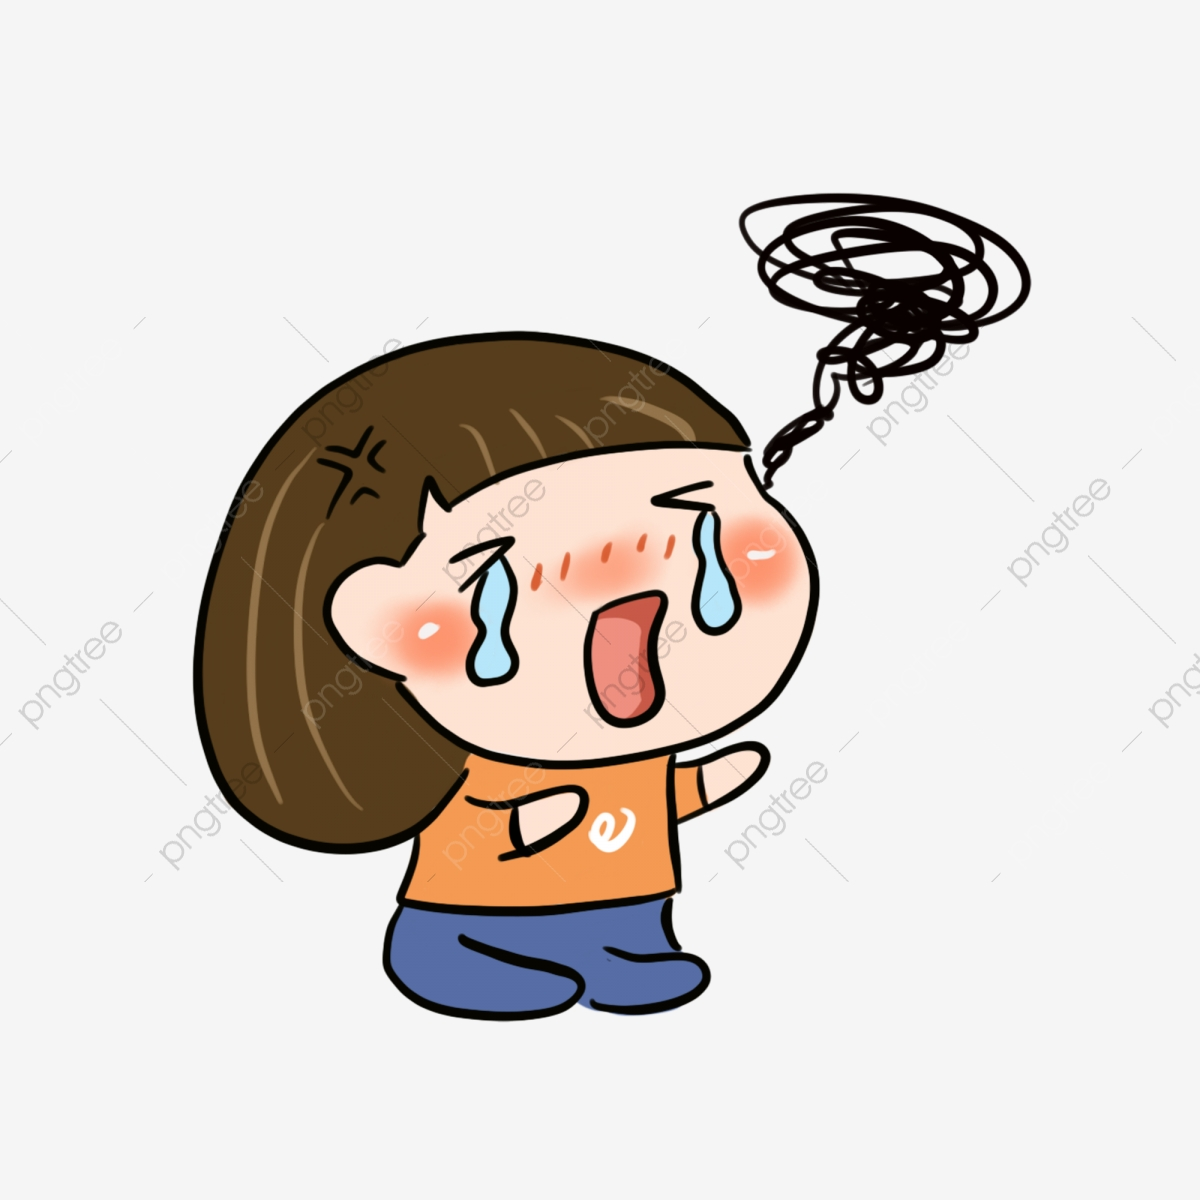 EPS Vector - Crying face. Stock Clipart Illustration gg62006435 - GoGraph